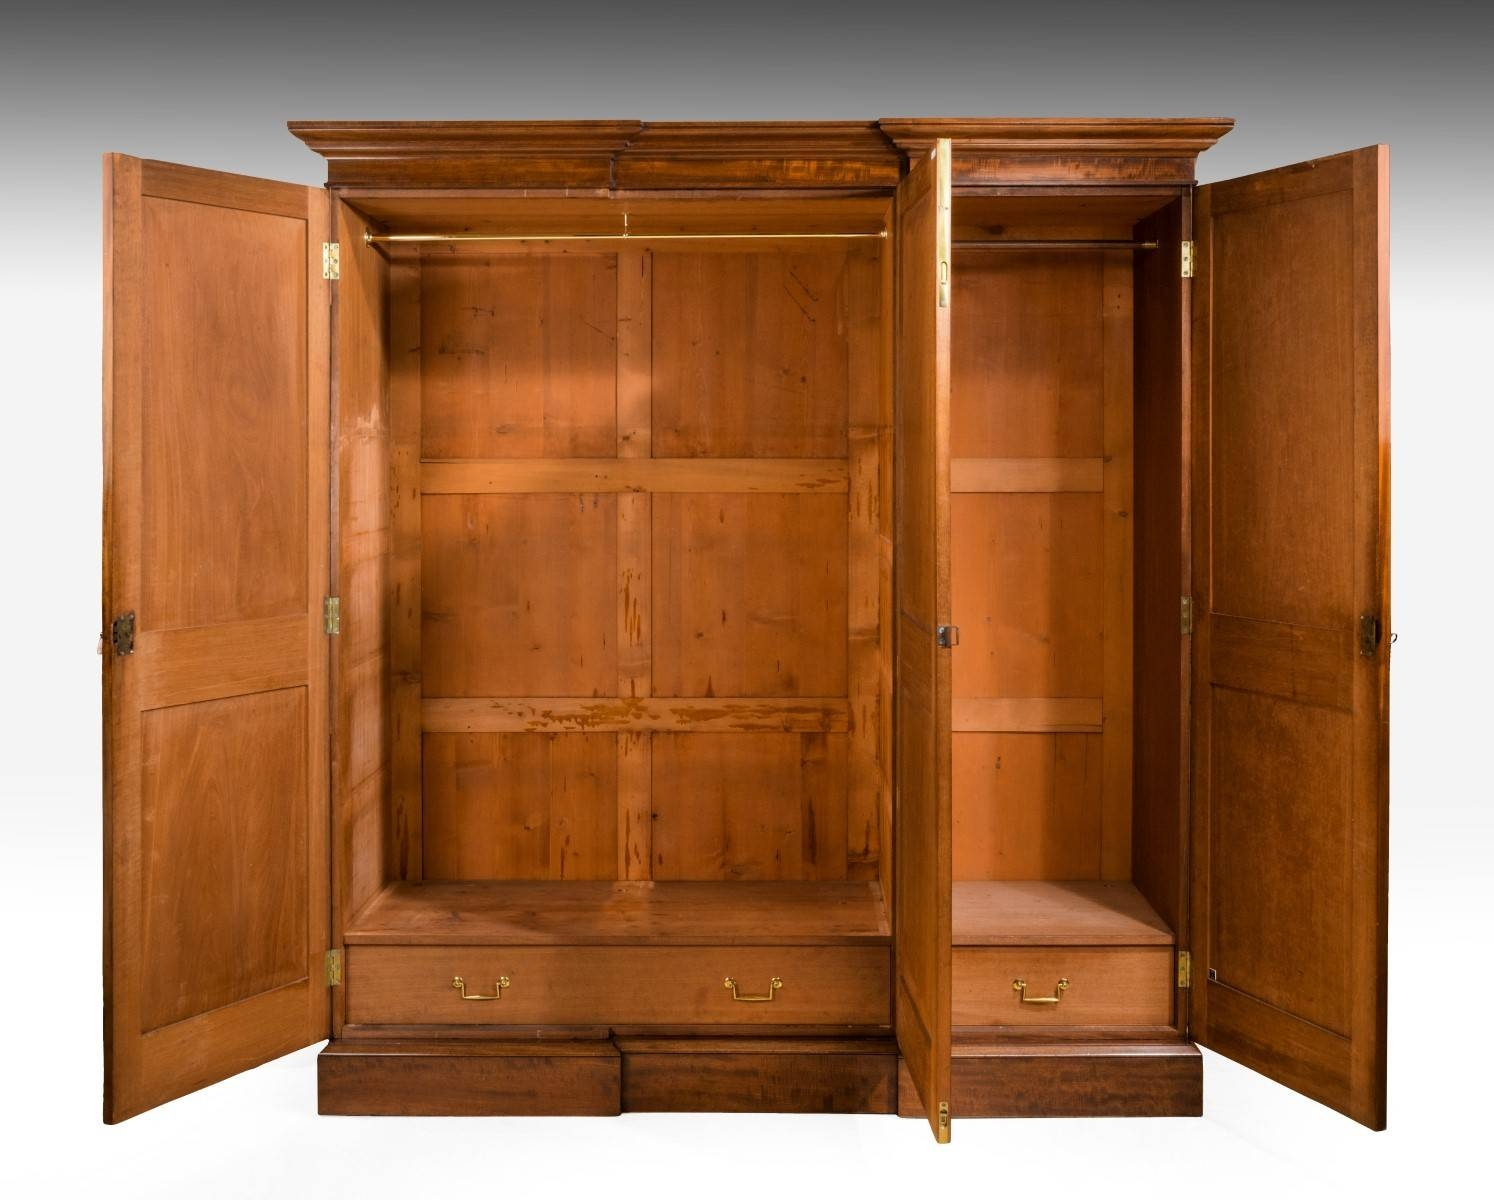 Gillows Design Breakfront Wardrobe (C. 1830 England) From Summers regarding Breakfront Wardrobe (Image 10 of 30)